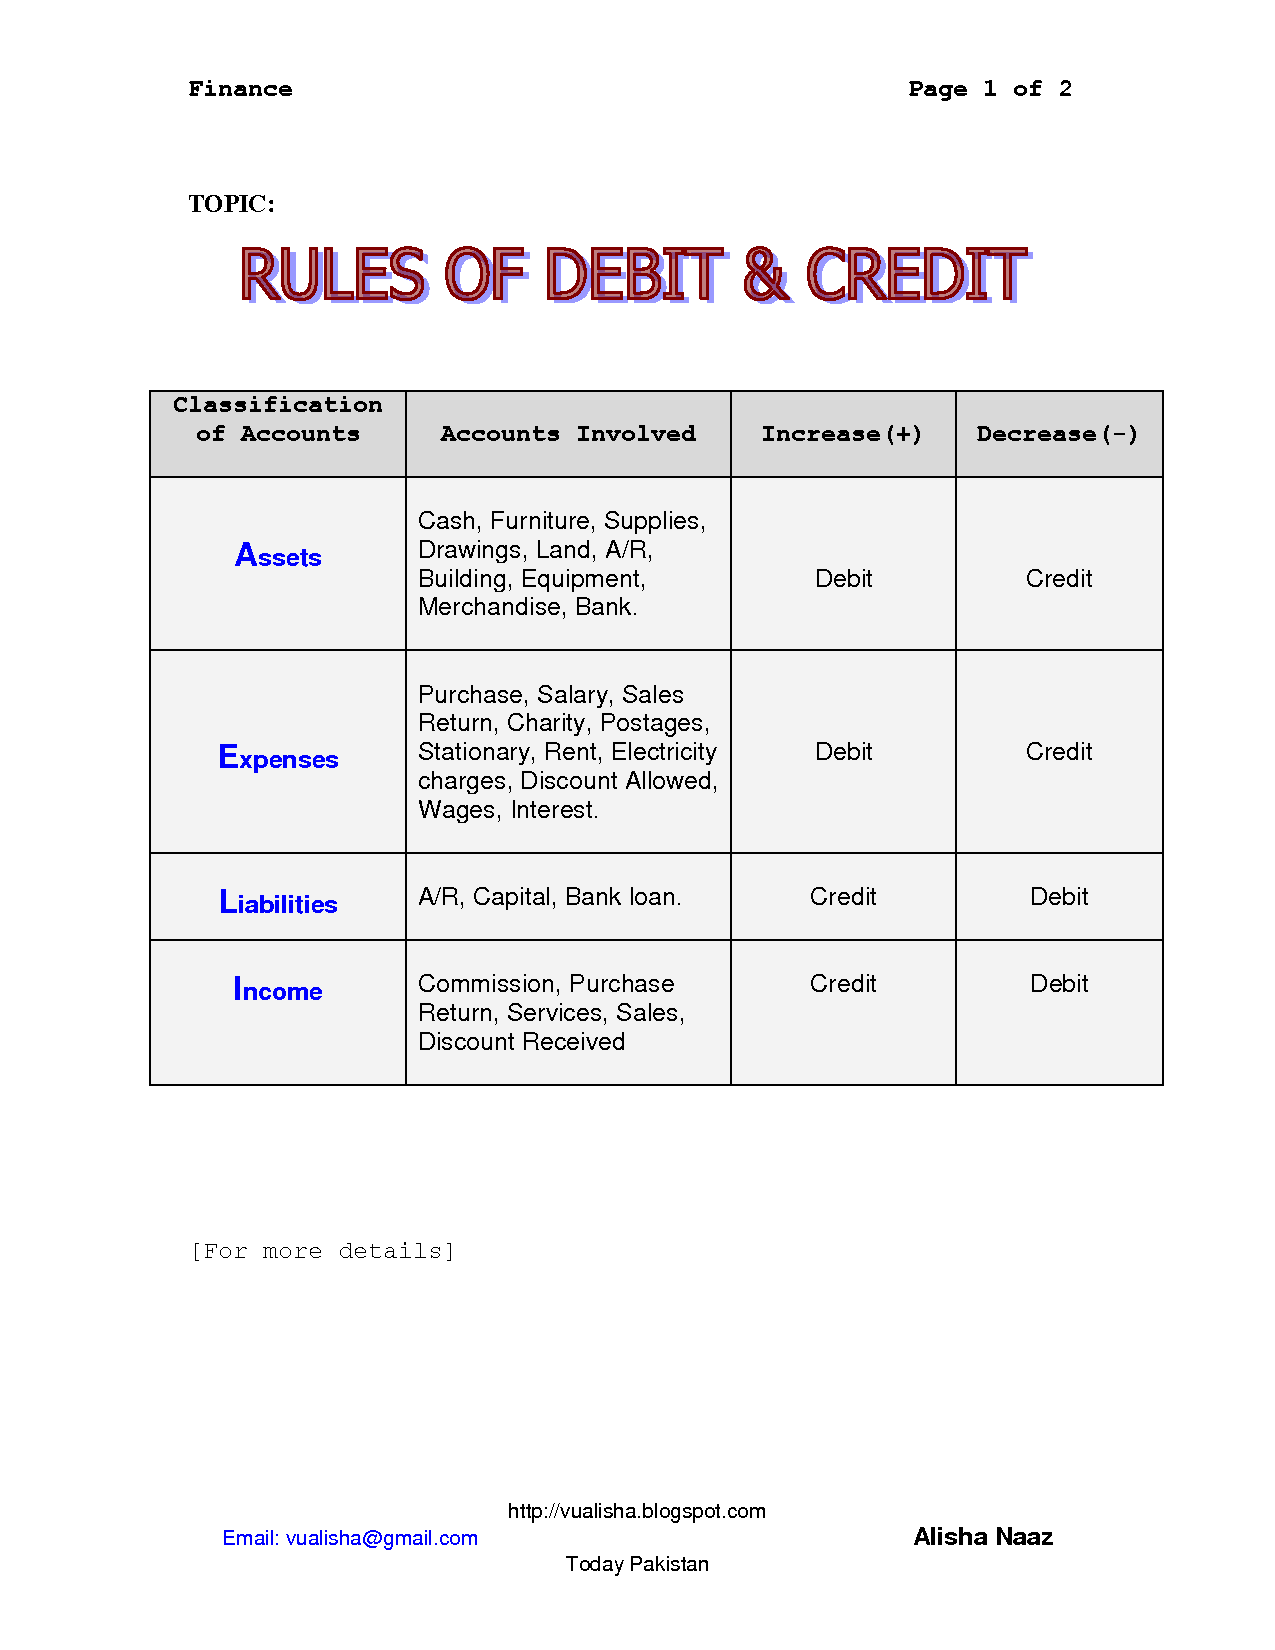 debit and credit in banking